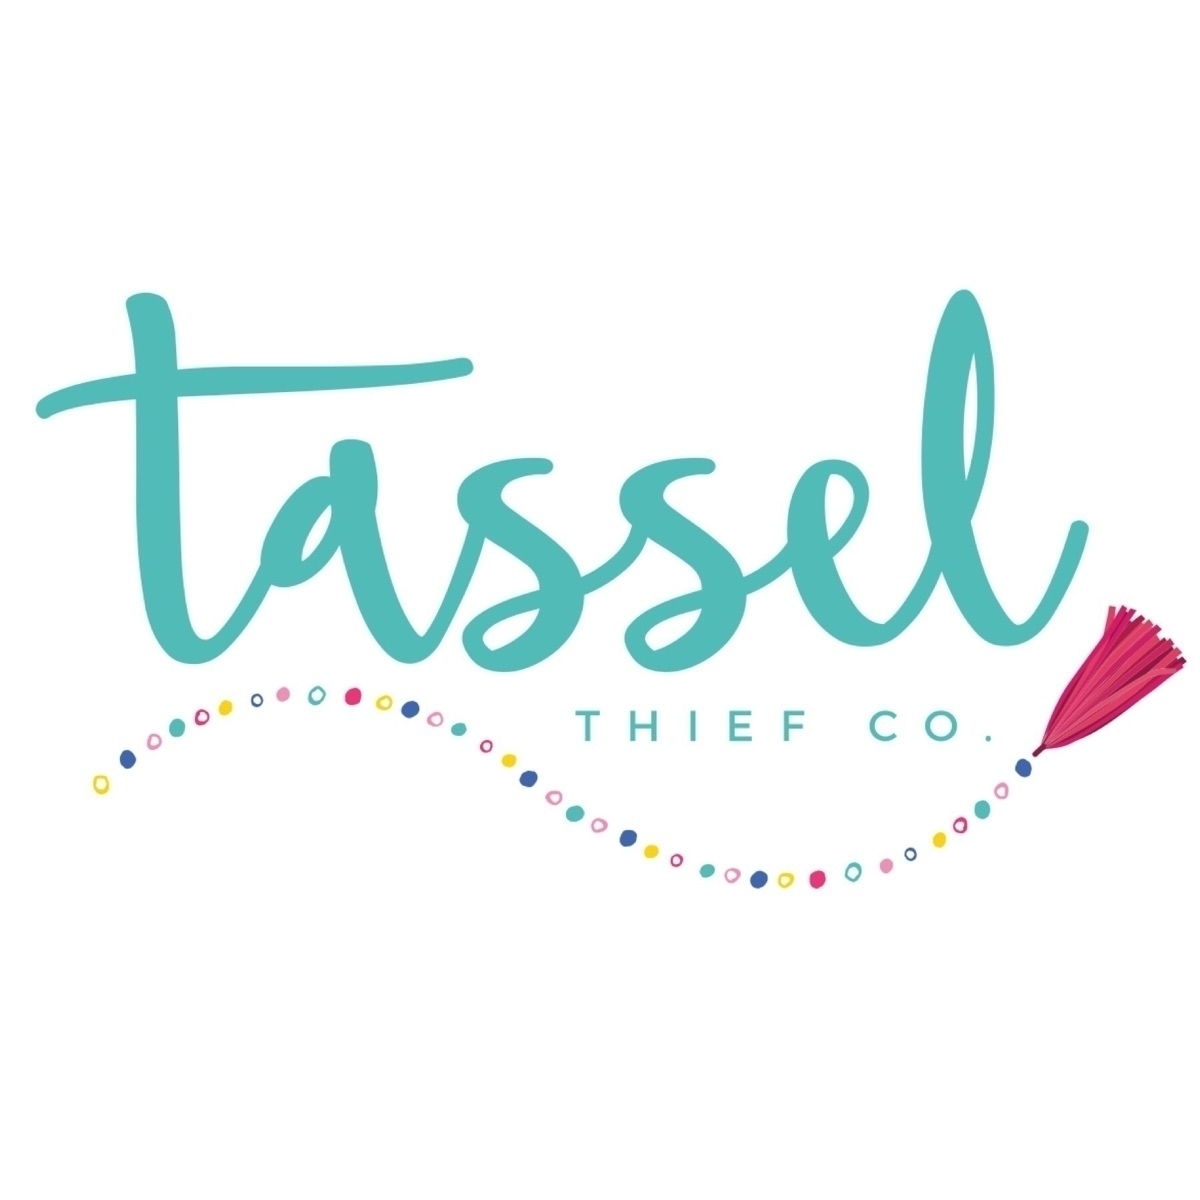 Tassel Thief Co (@tasselthiefco) Cover Image